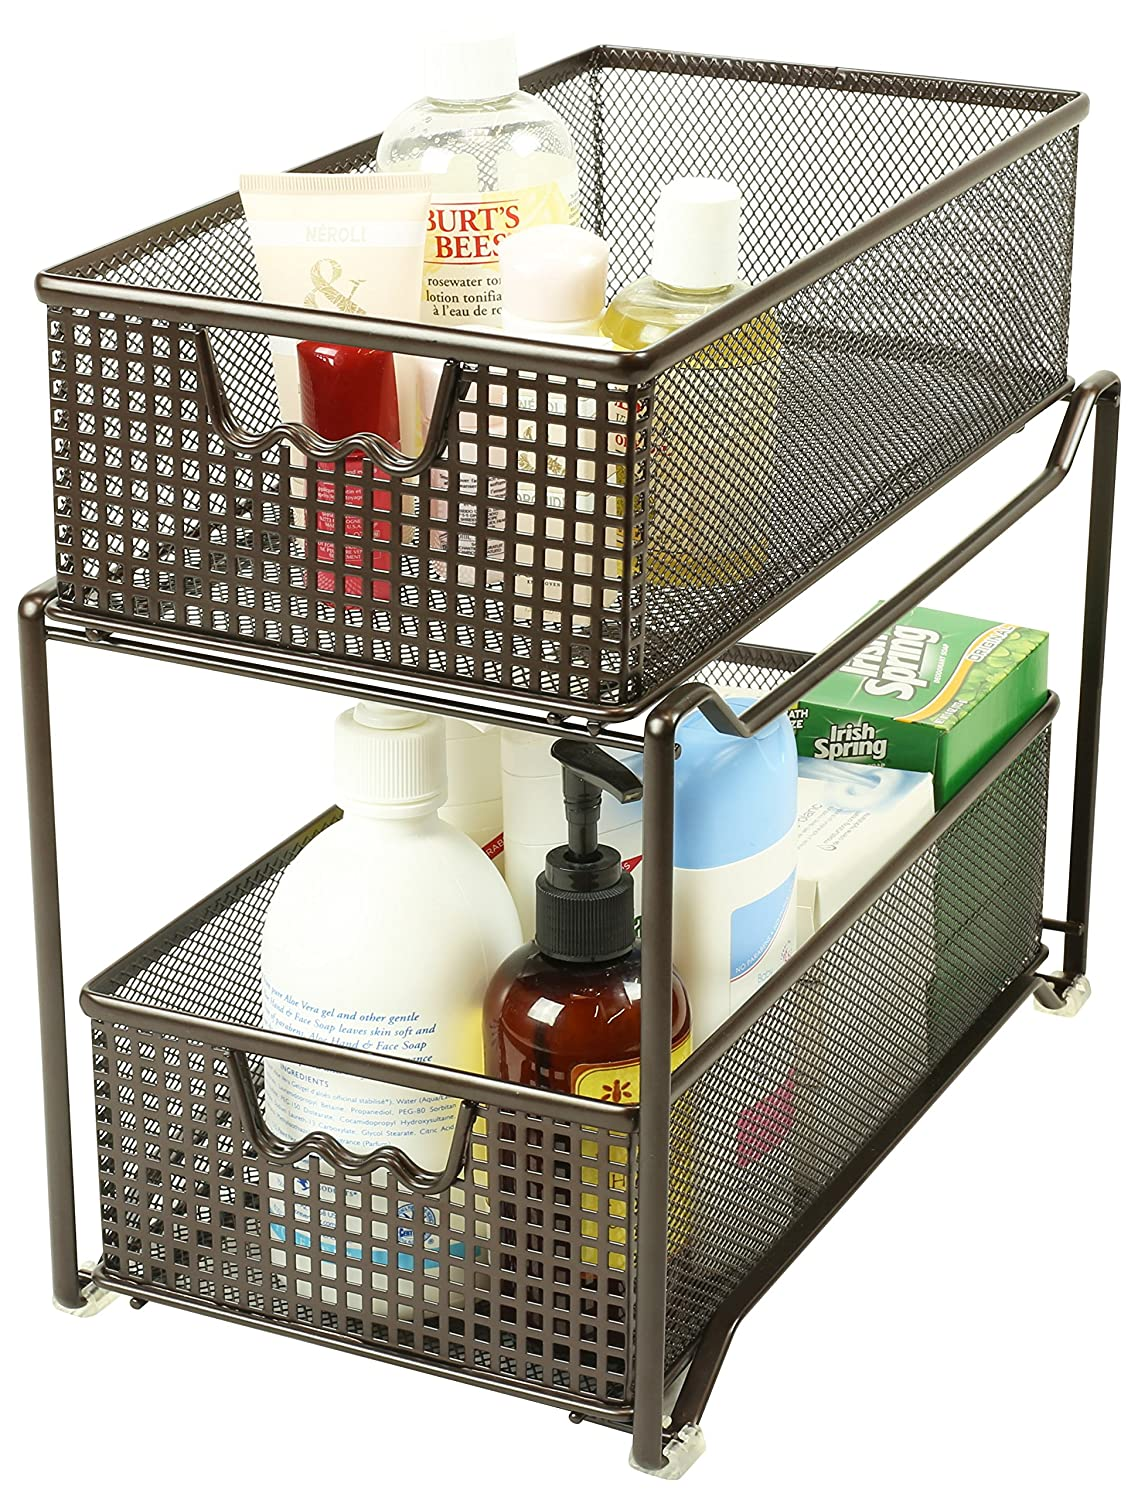 Uncategorized Sliding Basket Organizer amazon com decobros two tier mesh sliding cabinet basket organizer drawer bronze home kitchen